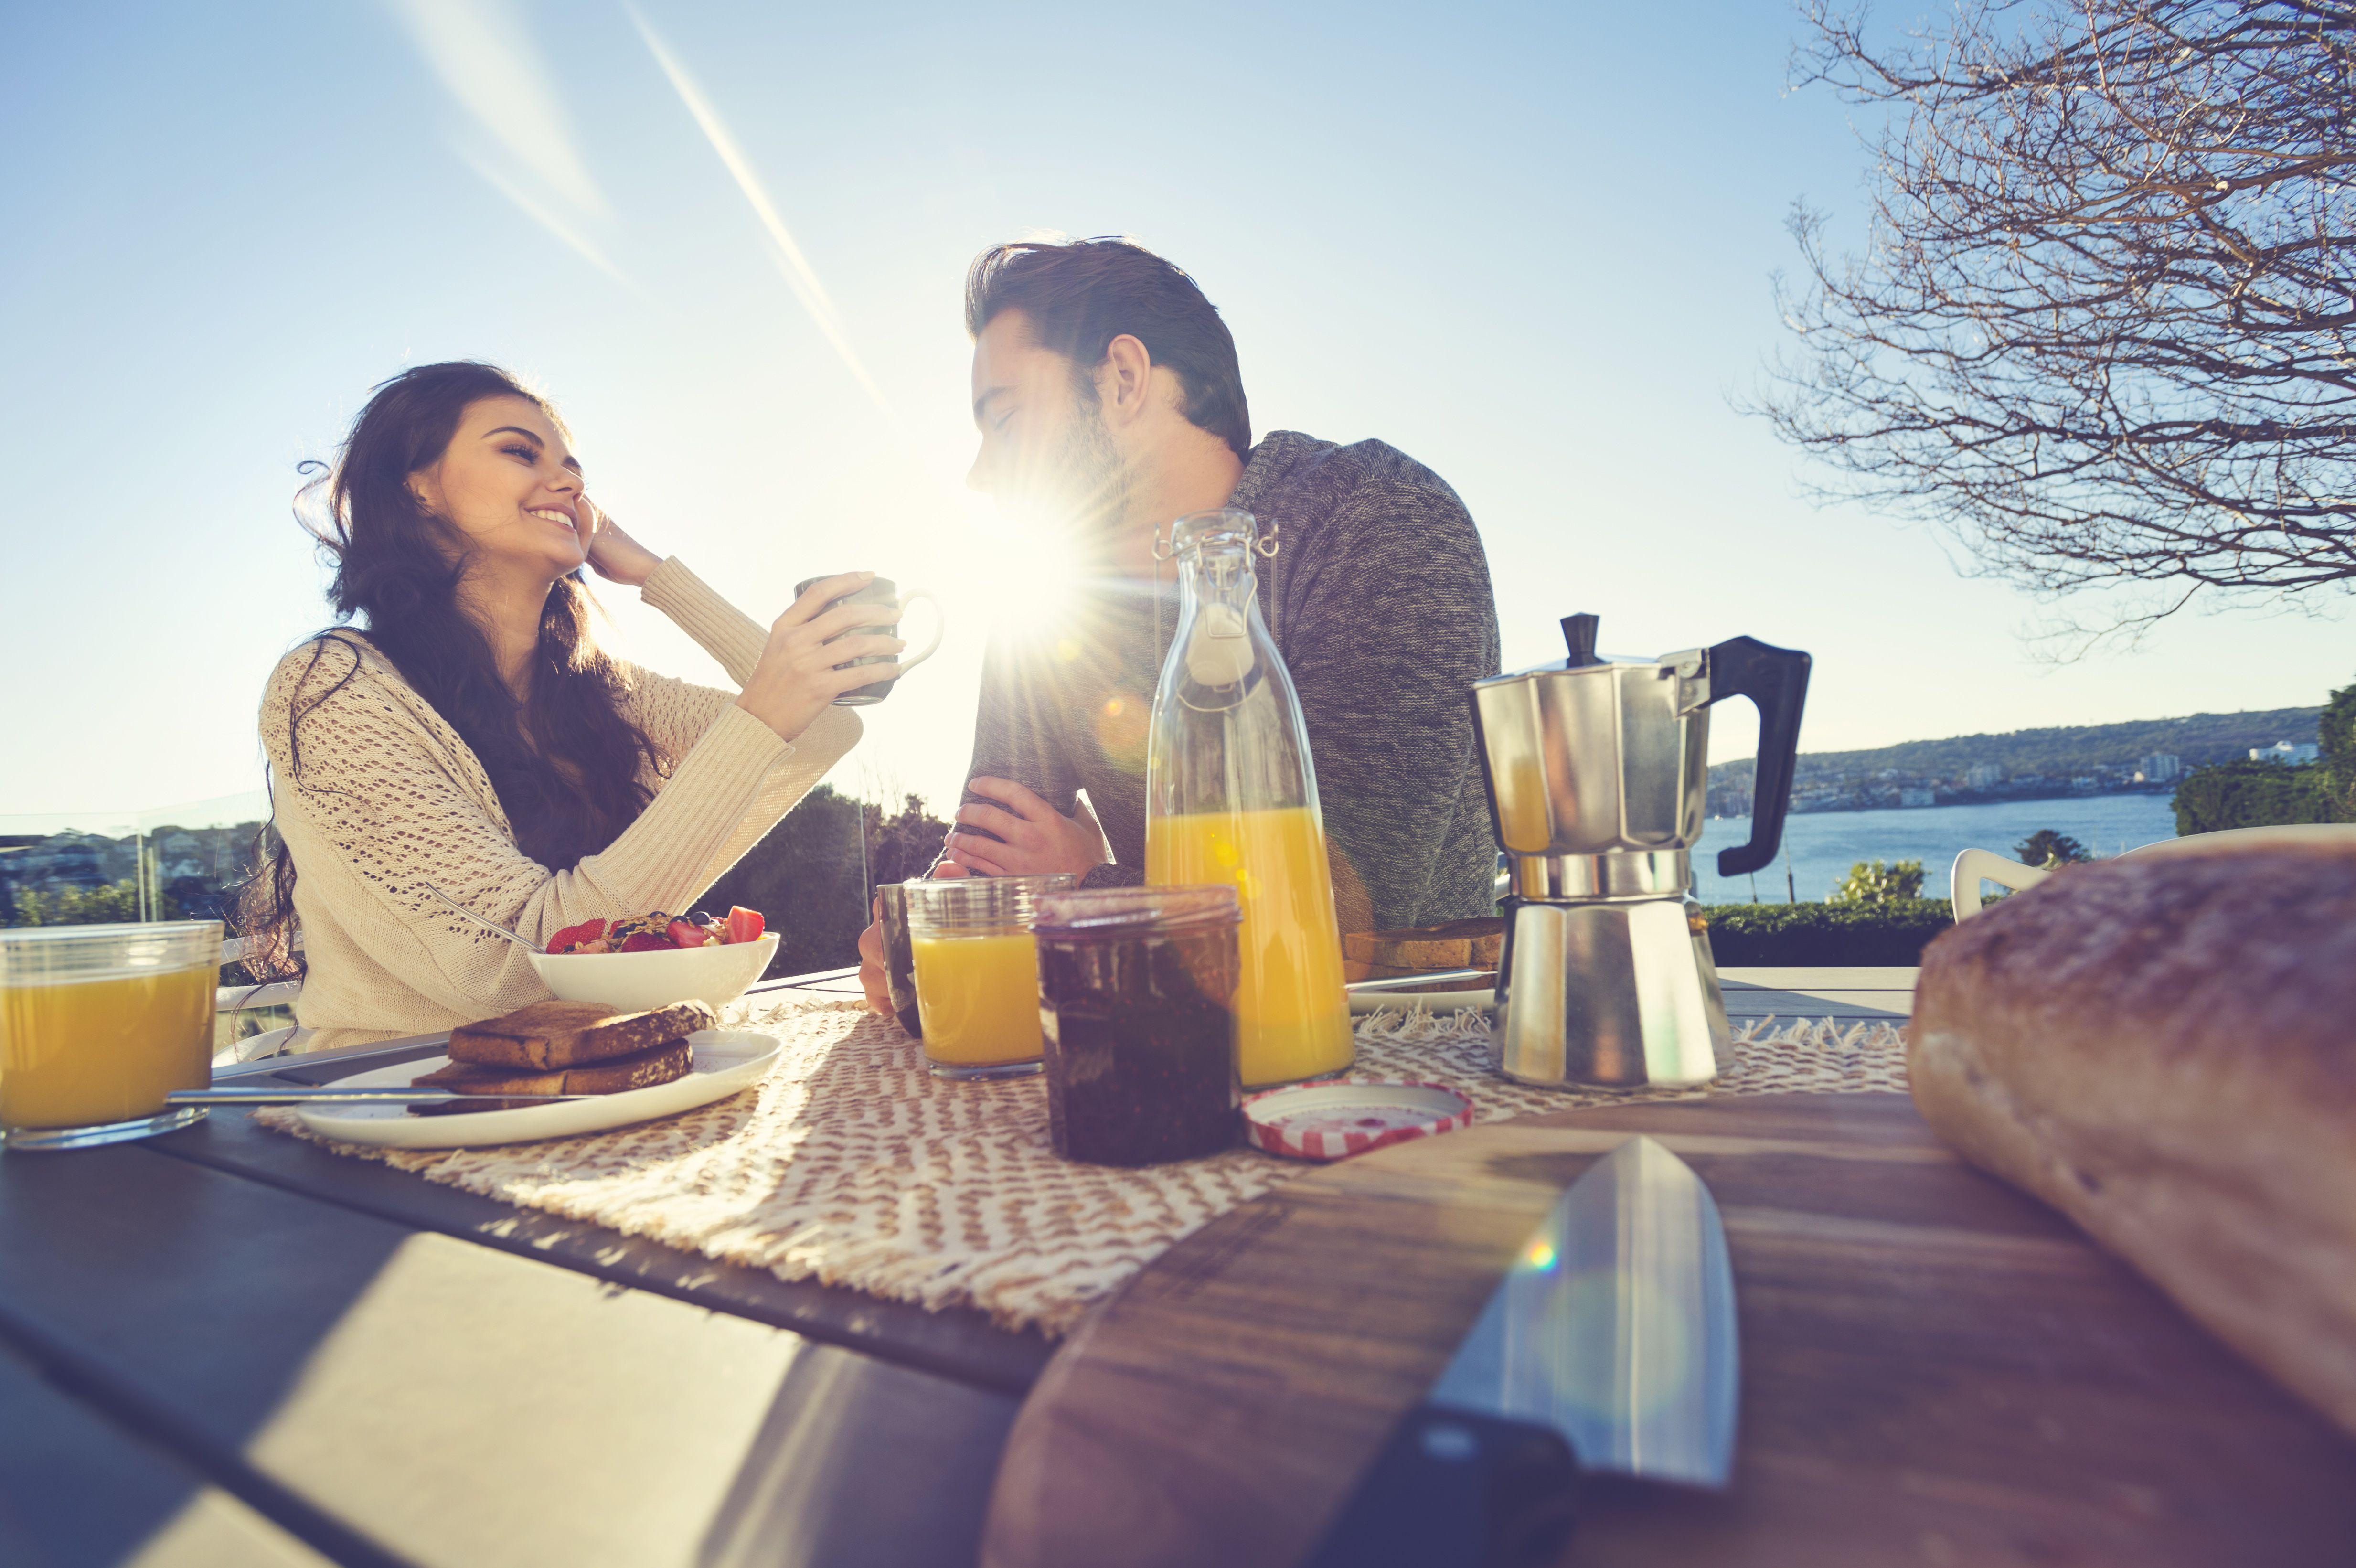 Daytime Date Ideas - Why Couples Should Do Early-Morning Dates